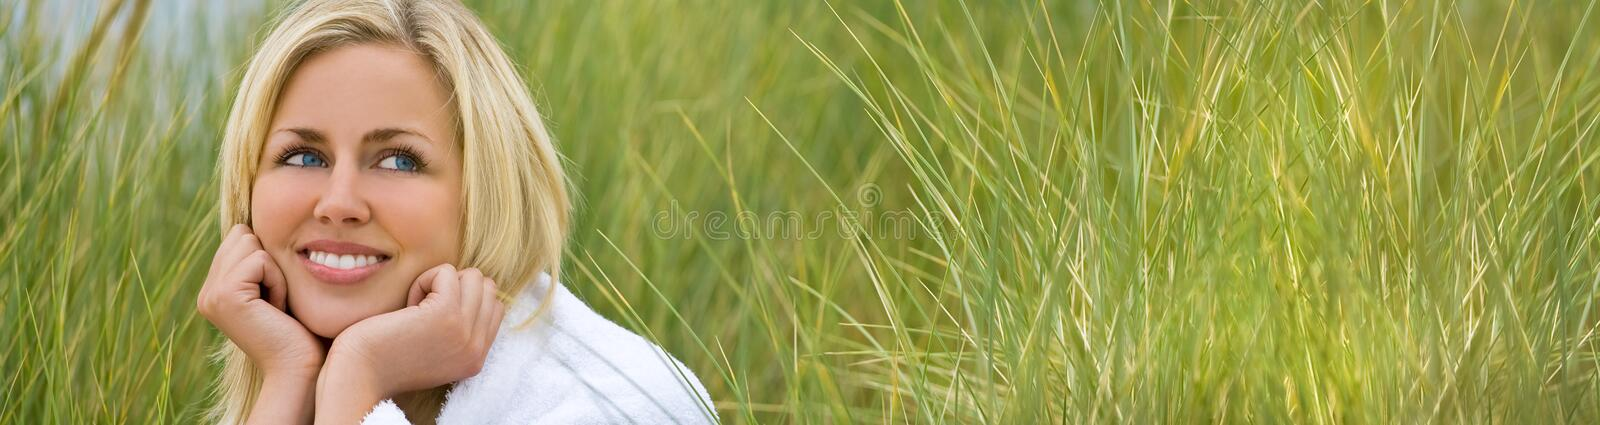 Panorama Web Banner Girl Young Woman Natural Grass royalty free stock images